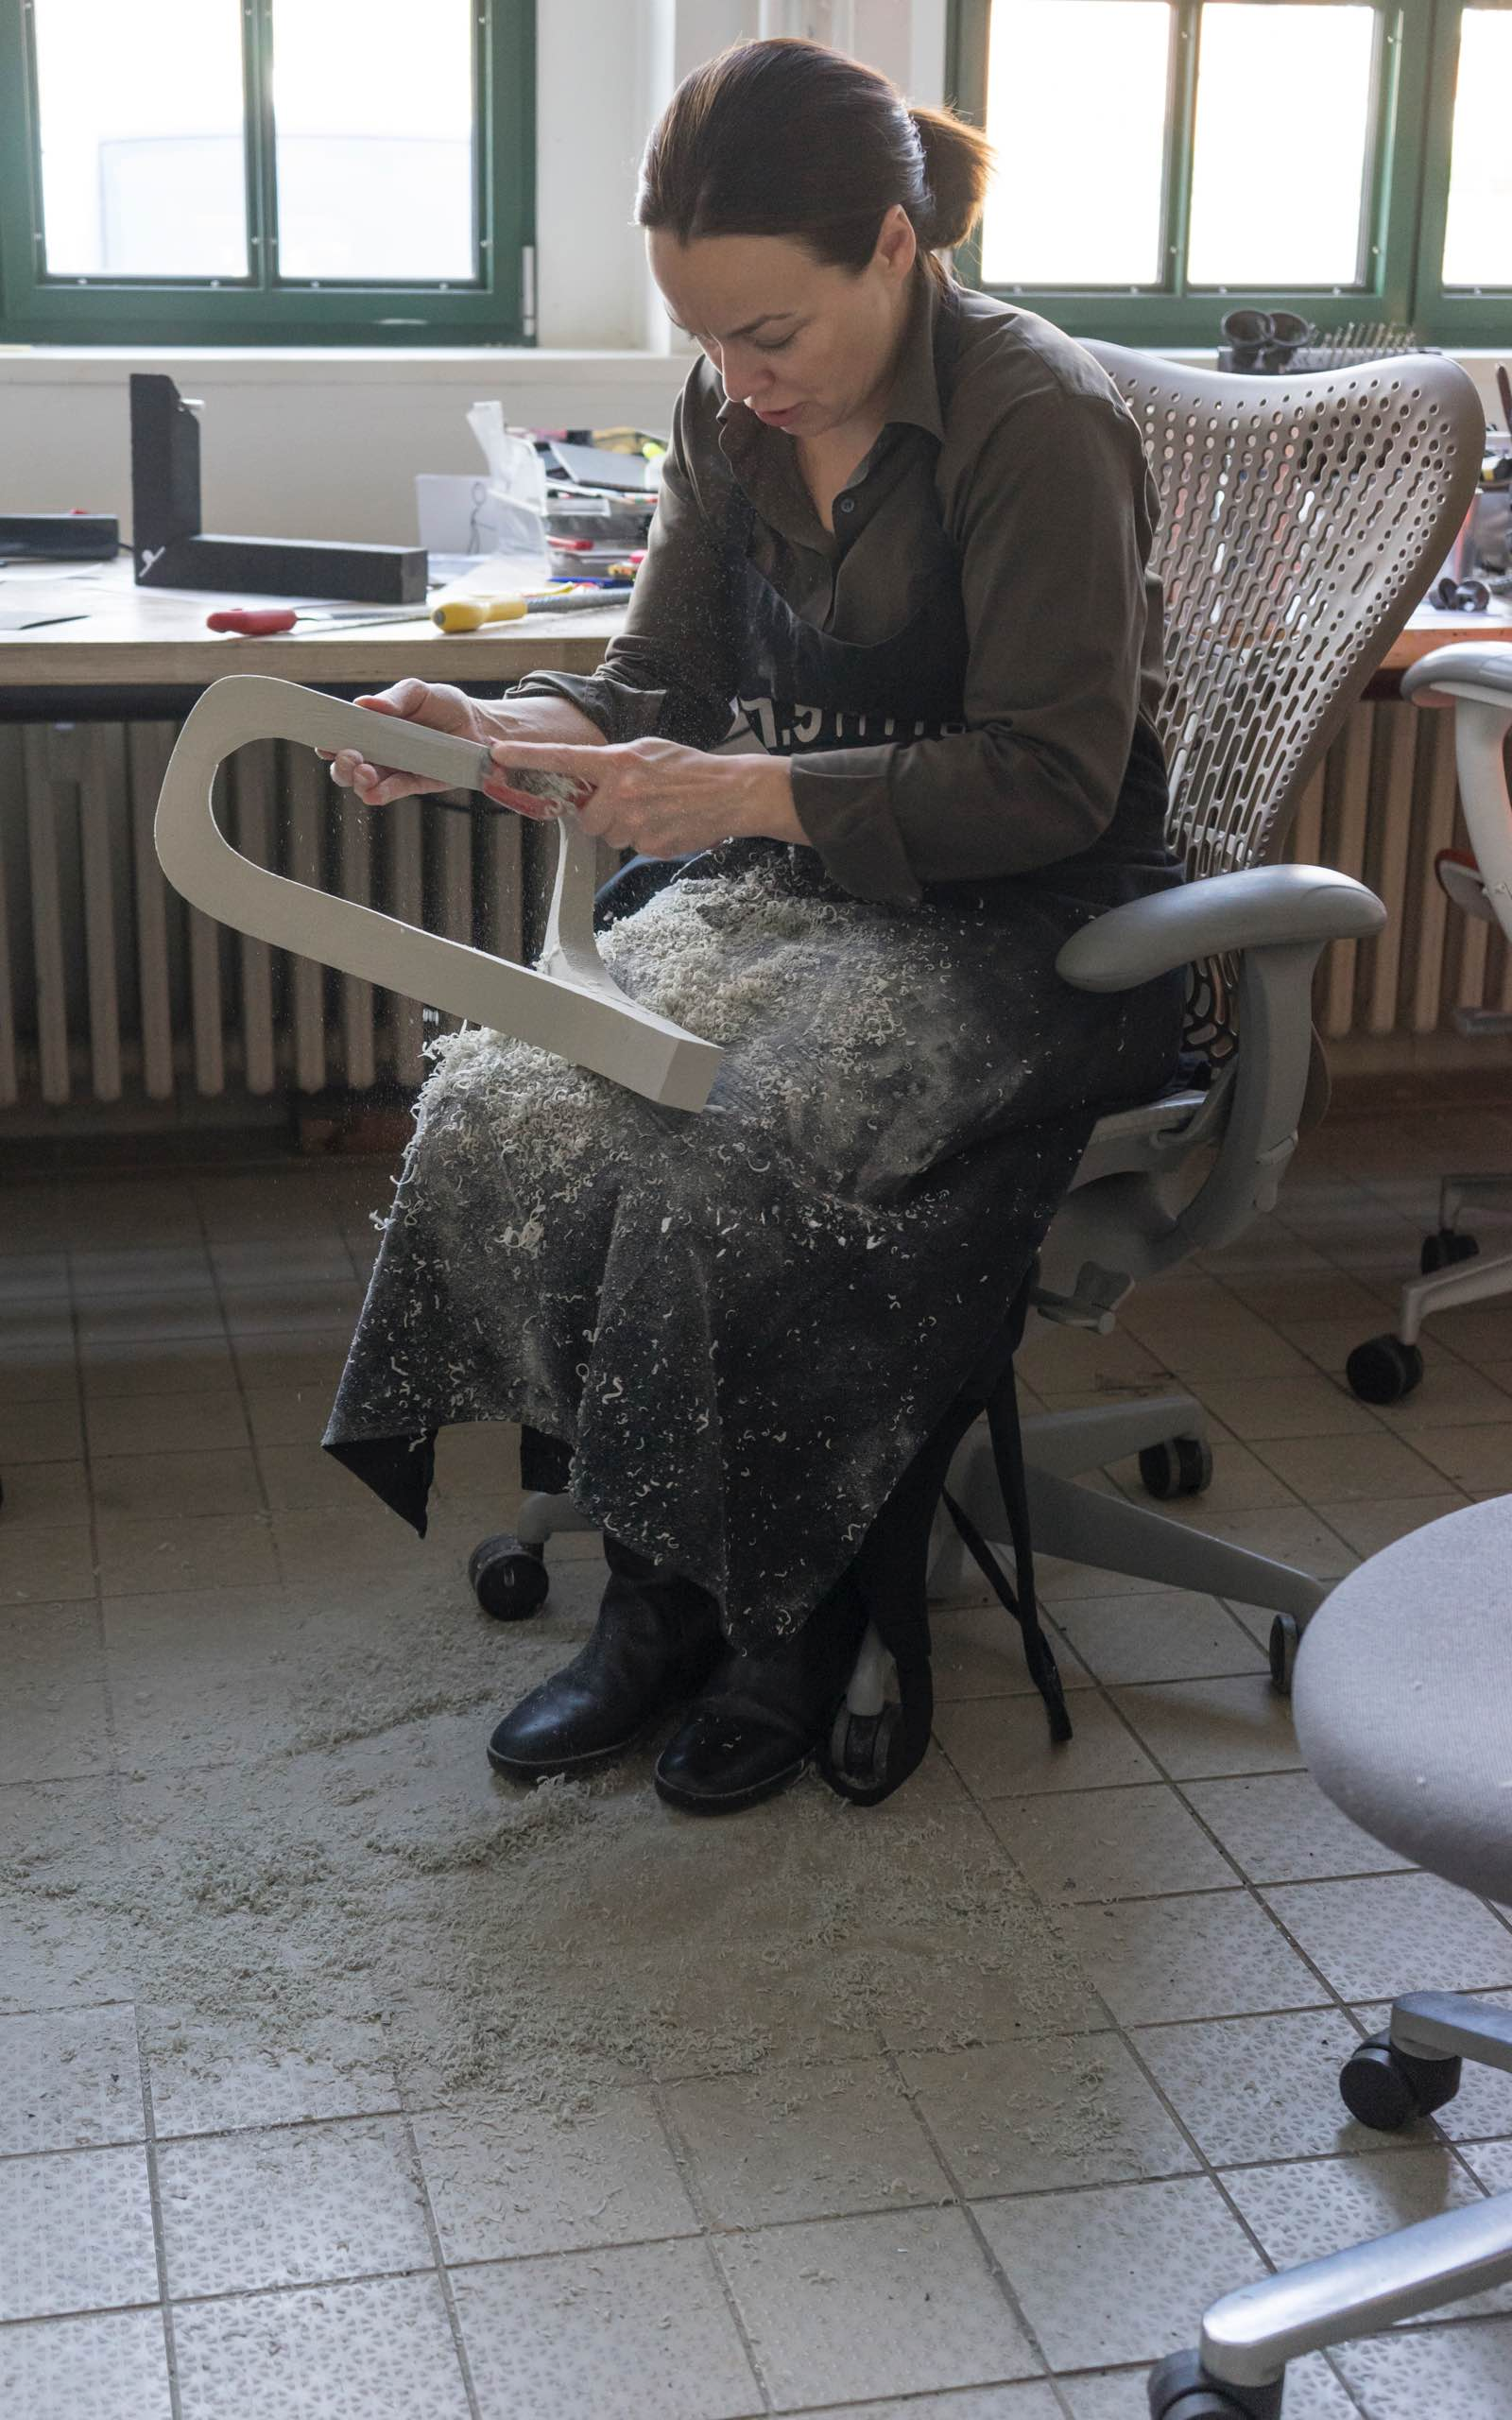 A member of Studio 7.5 shaves down material to make a model during the development of the Cosm Chair.